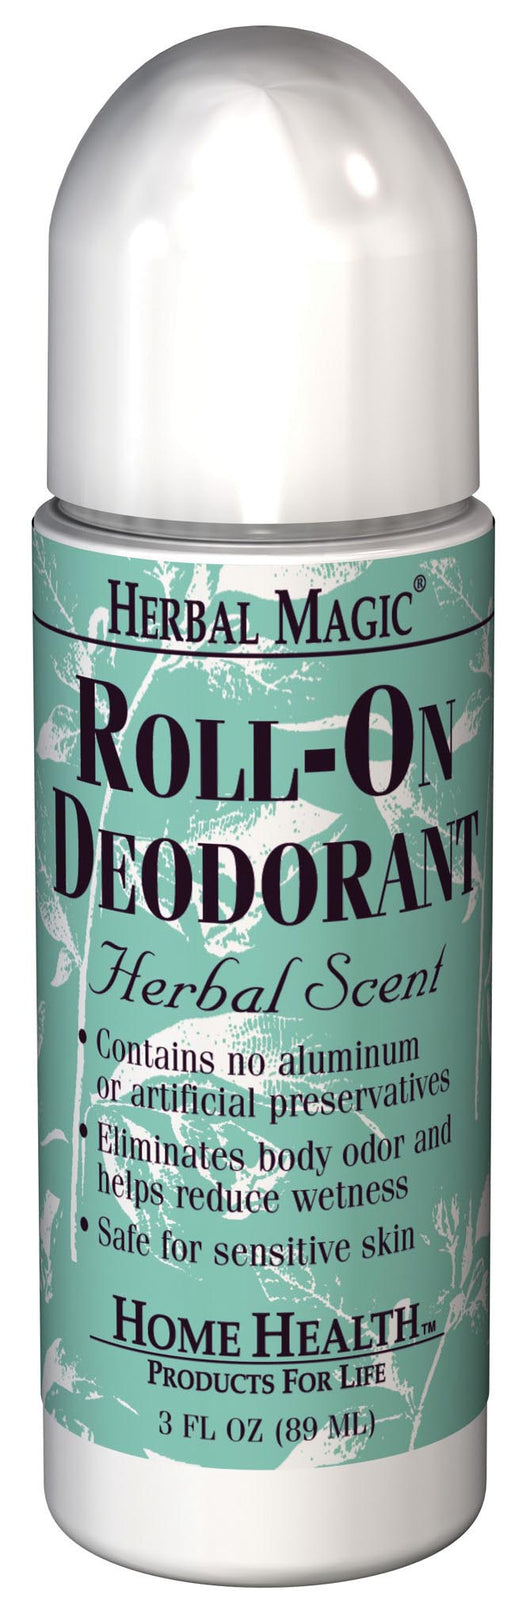 Herbal Magic Deodorant-HERBAL Roll-o